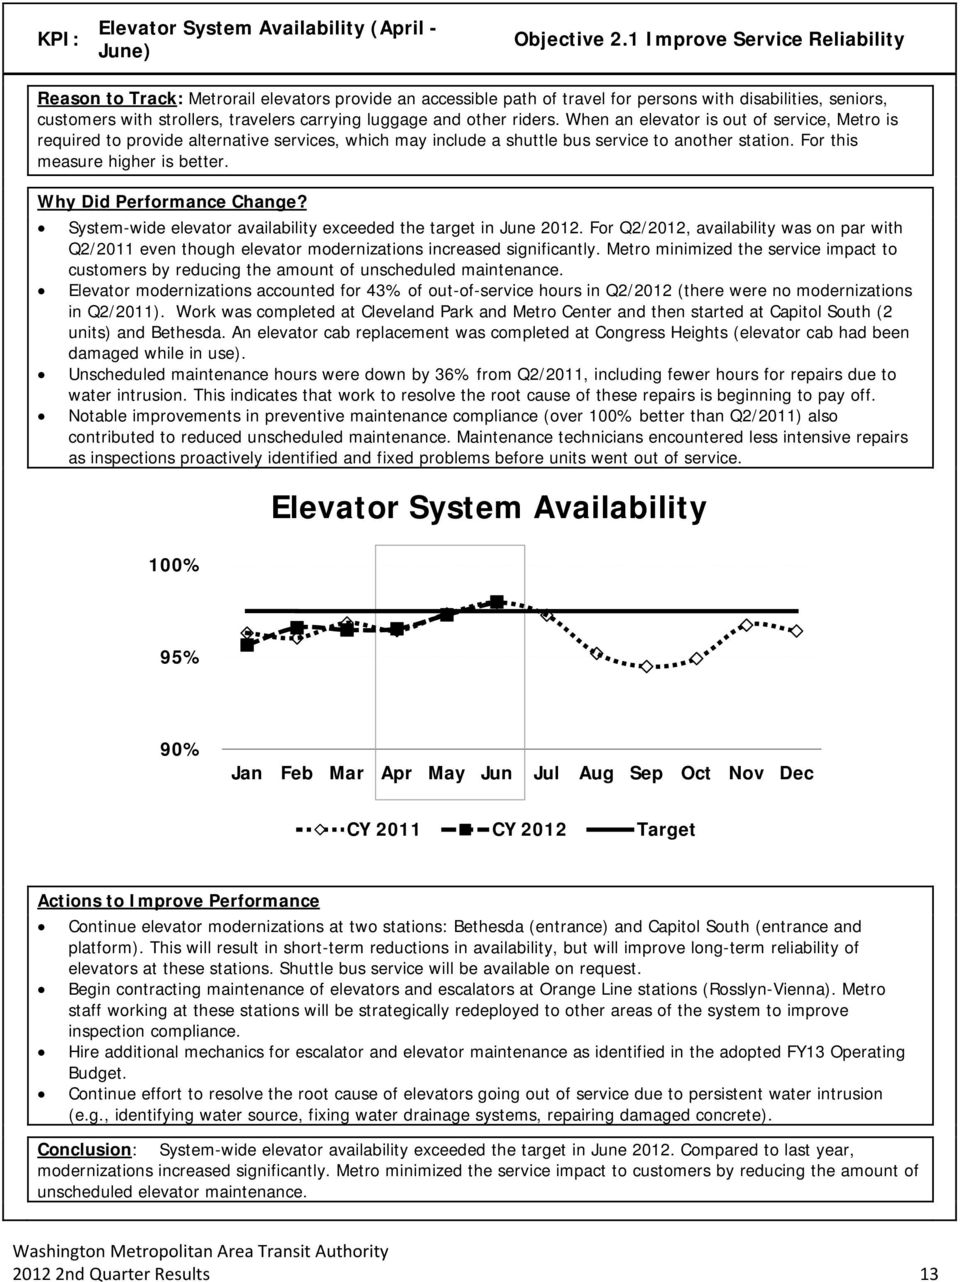 and other riders. When an elevator is out of service, Metro is required to provide alternative services, which may include a shuttle bus service to another station. For this measure higher is better.